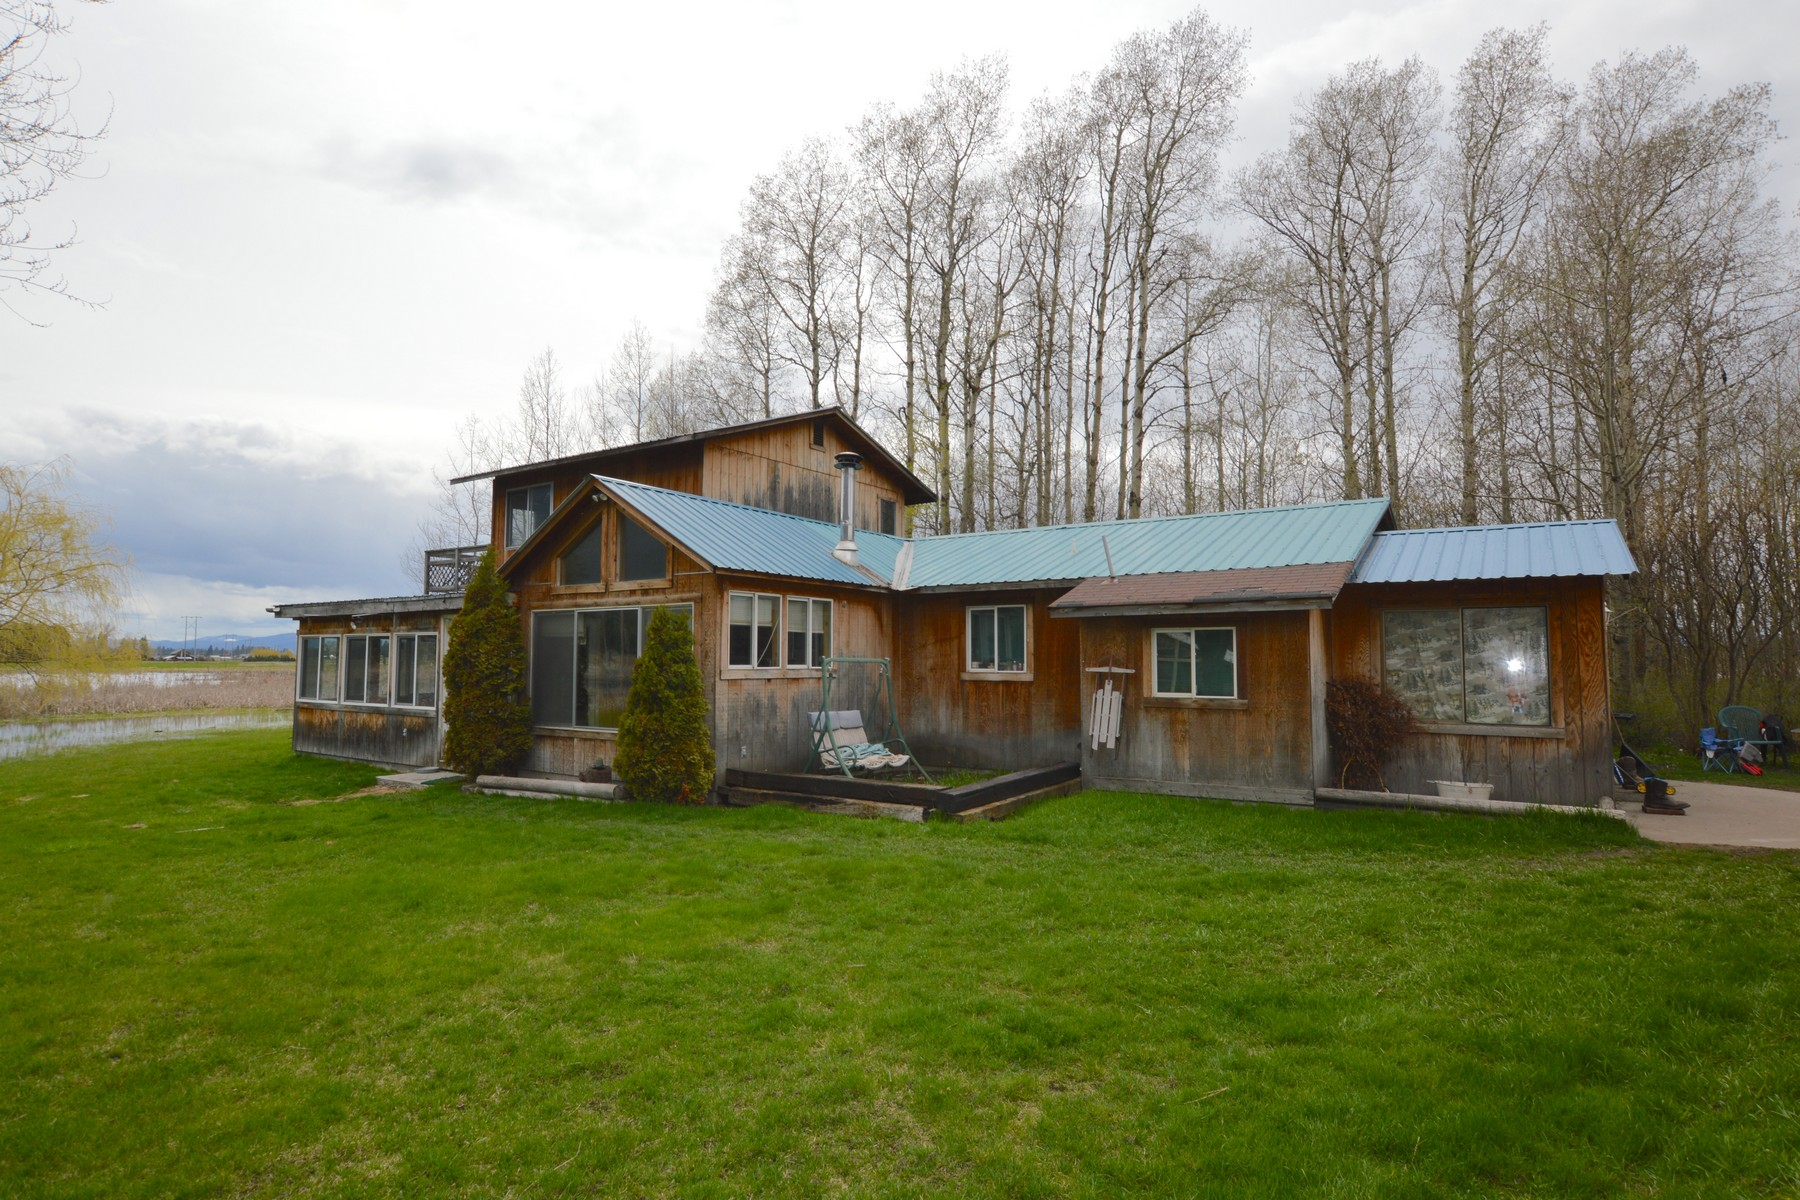 Additional photo for property listing at 225 Bison Hollow Rd , Columbia Falls, MT 59912 225  Bison Hollow Rd Columbia Falls, Montana 59912 United States